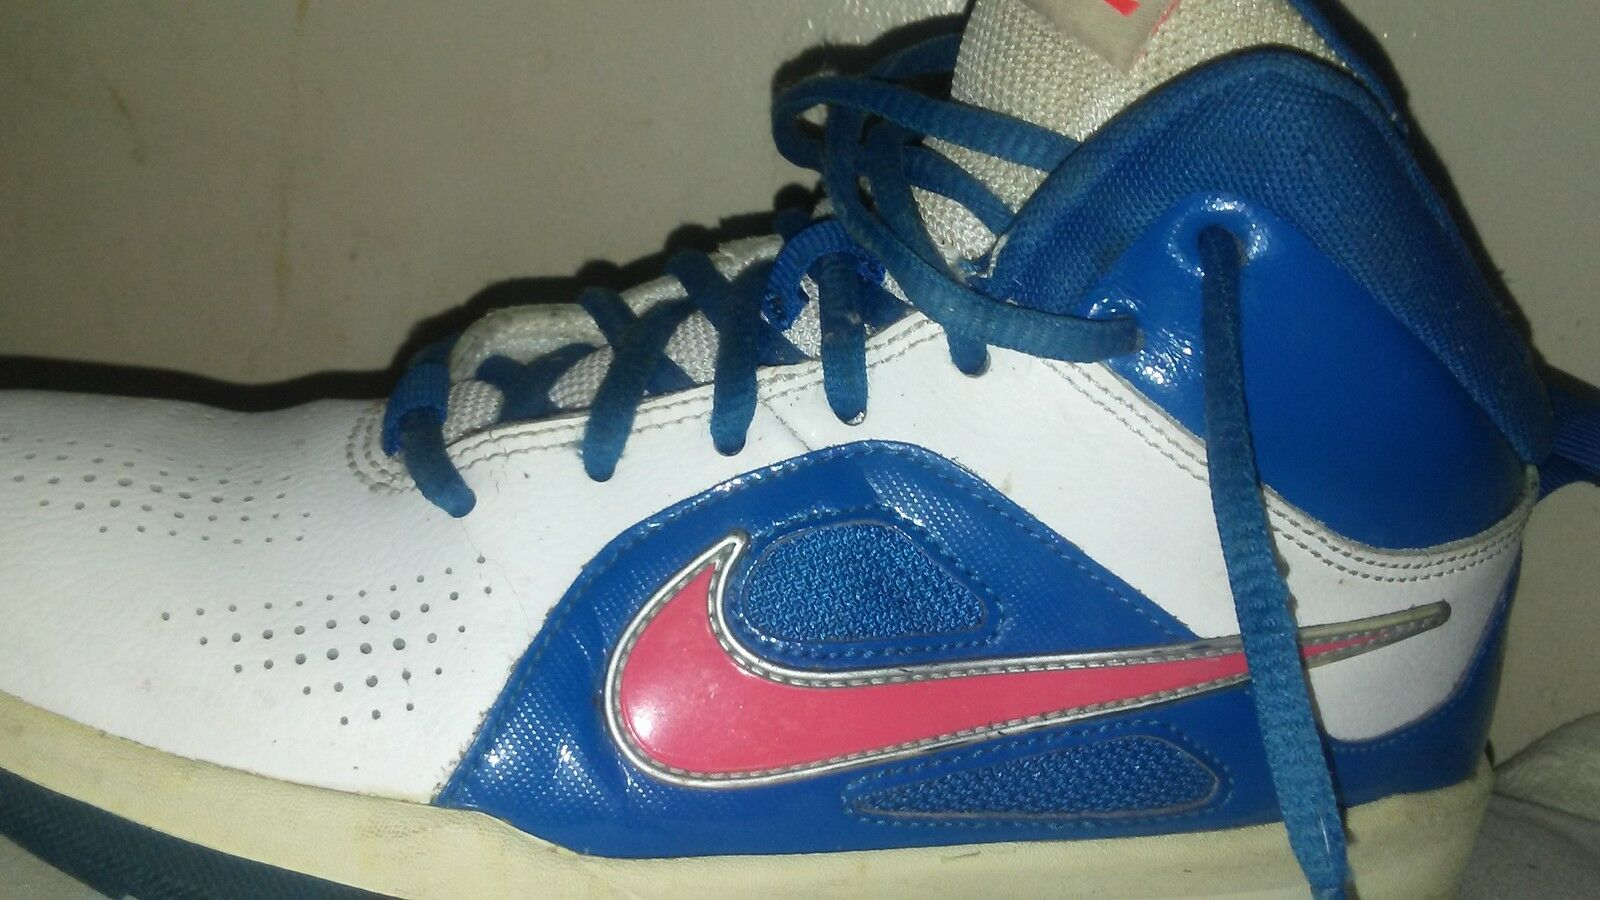 bluee and white nike sneaker